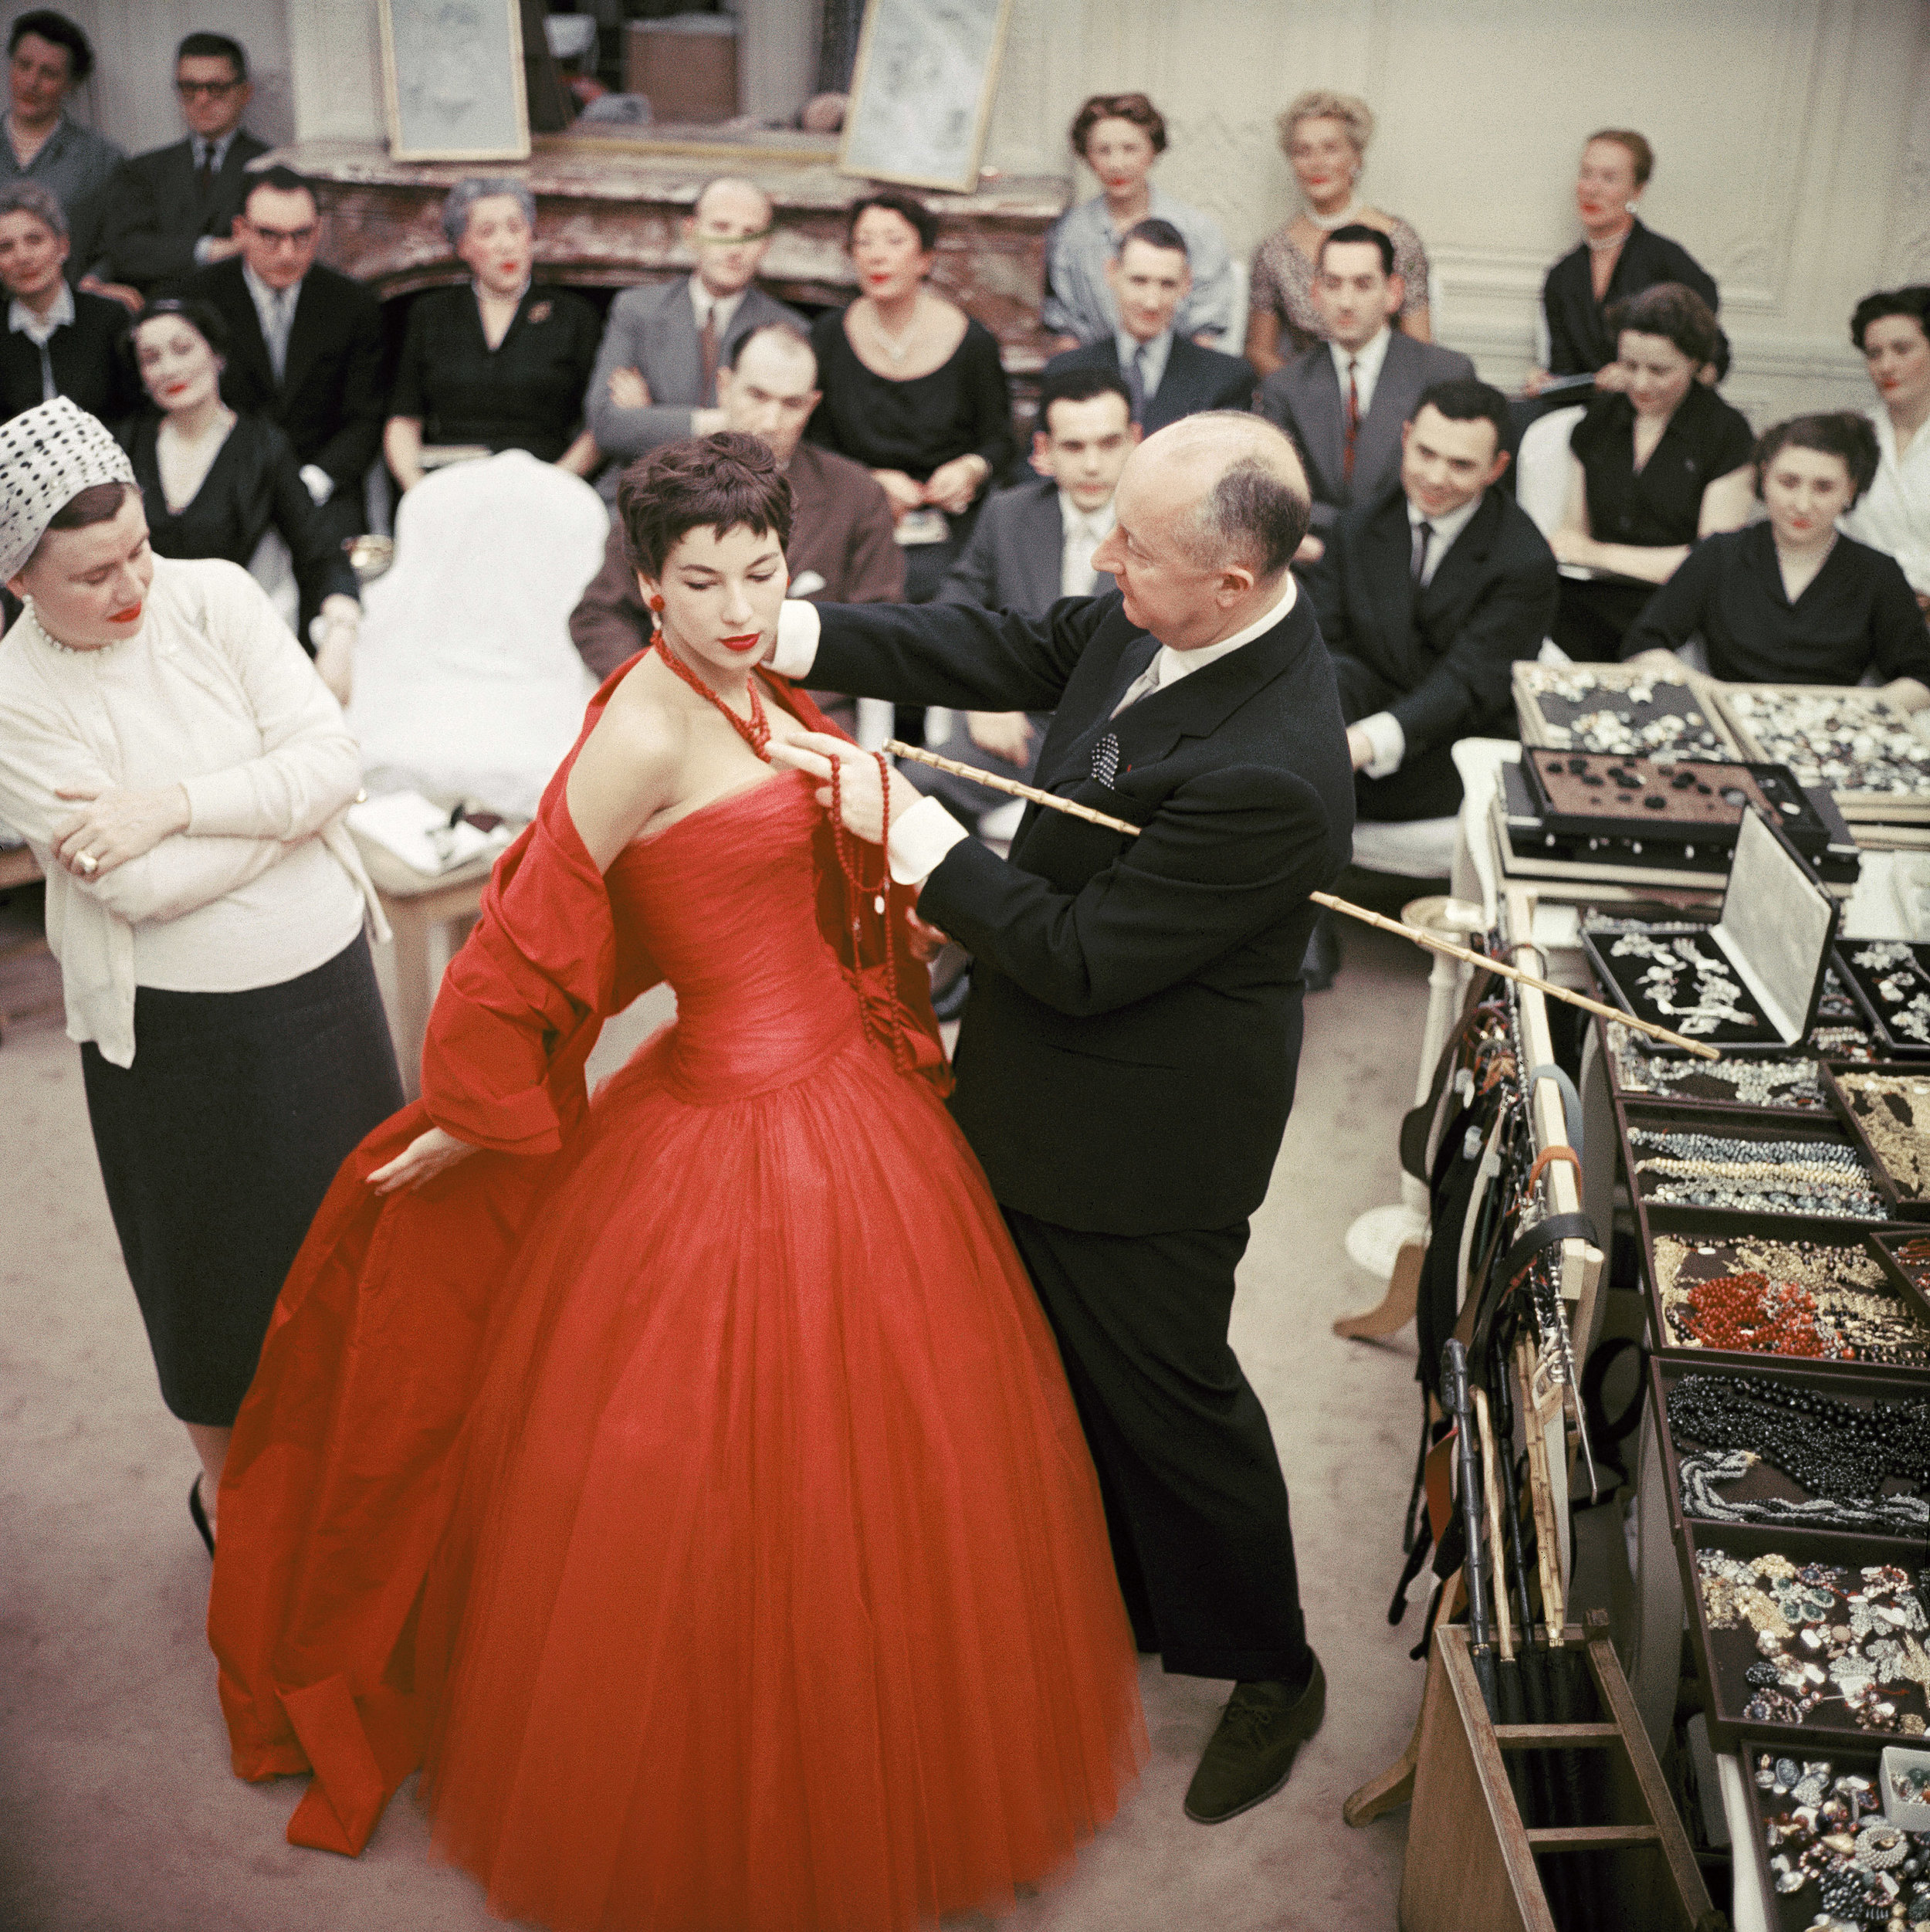 Christian Dior and his team during a fitting.l